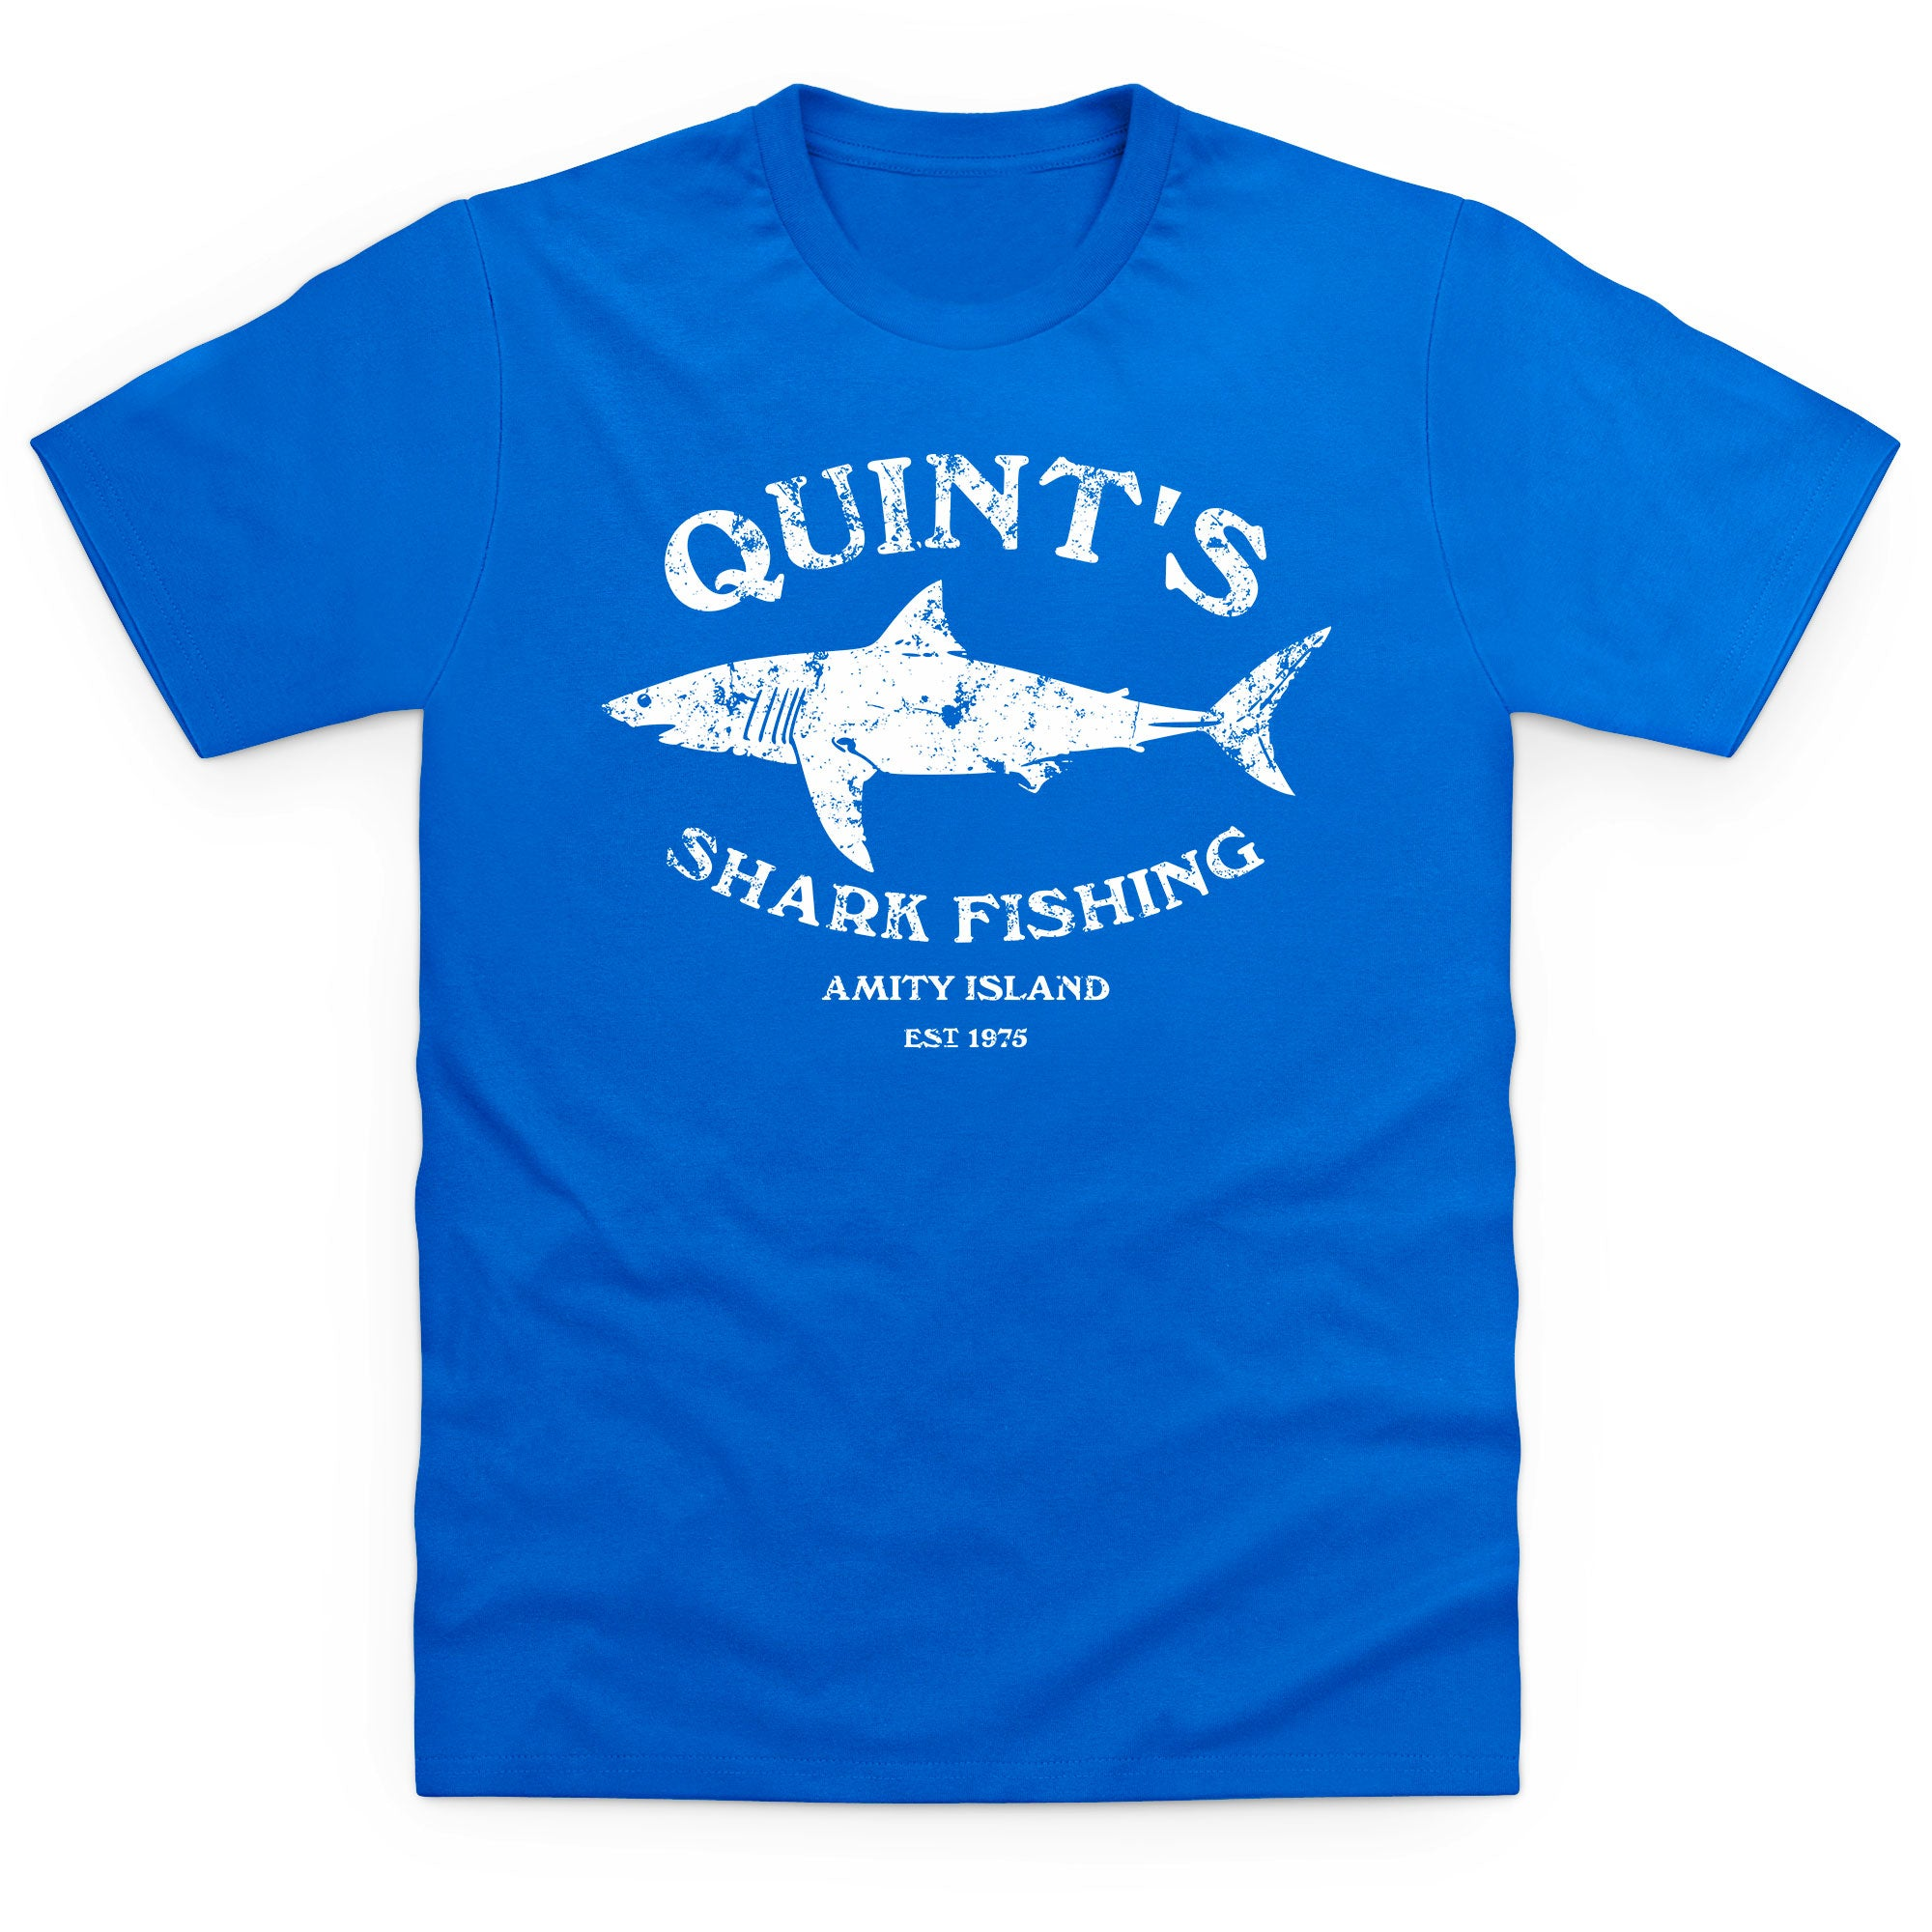 CHEAP Inspired By Jaws – Quint's Shark Fishing Kid's T Shirt 25897396453 – Clothing Accessories